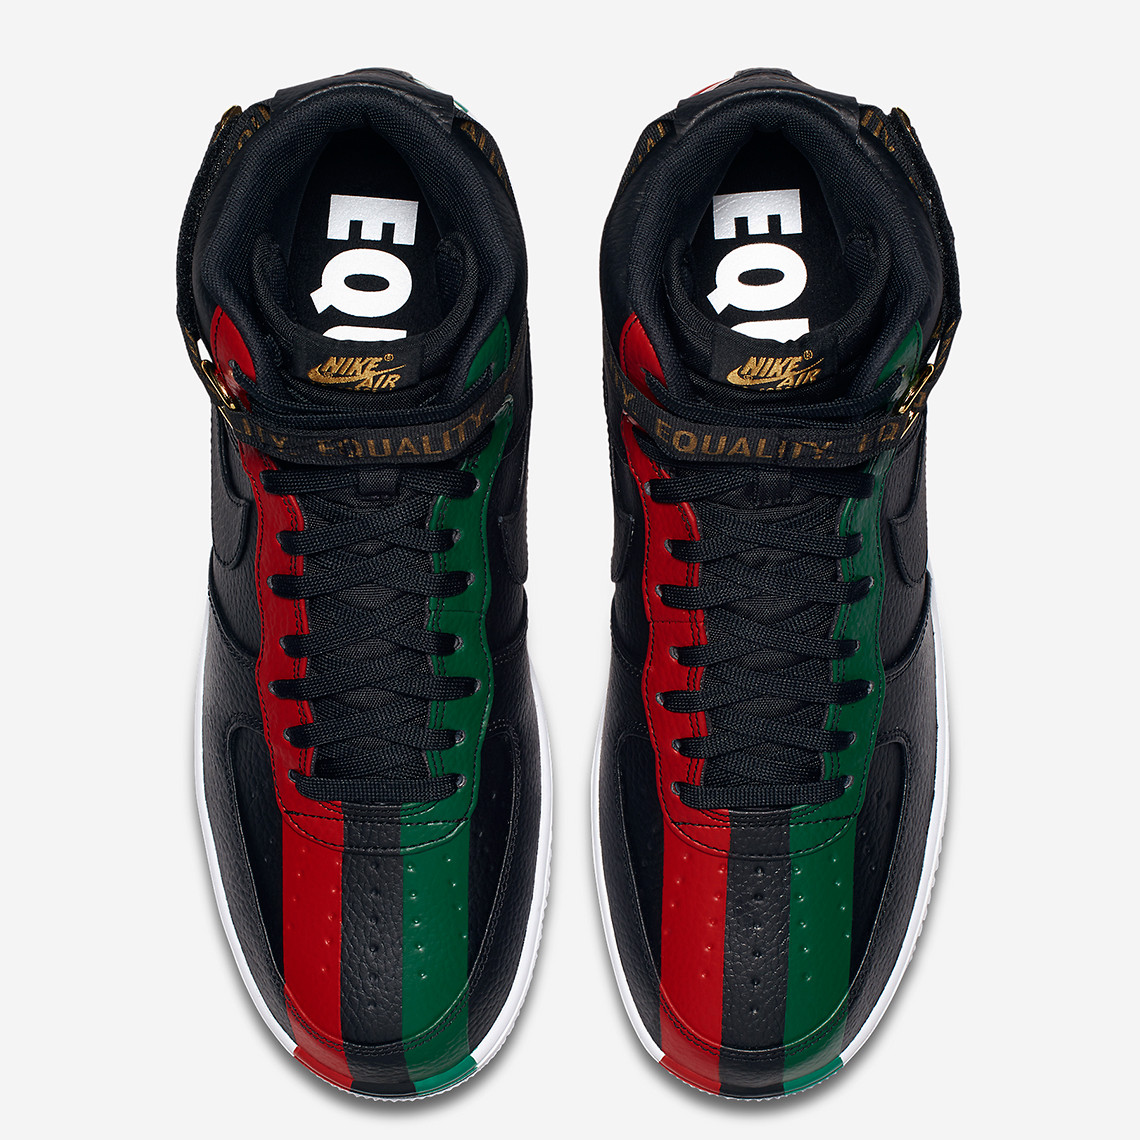 nike-air-force-1-high-bhm-836227-002-official-images-8